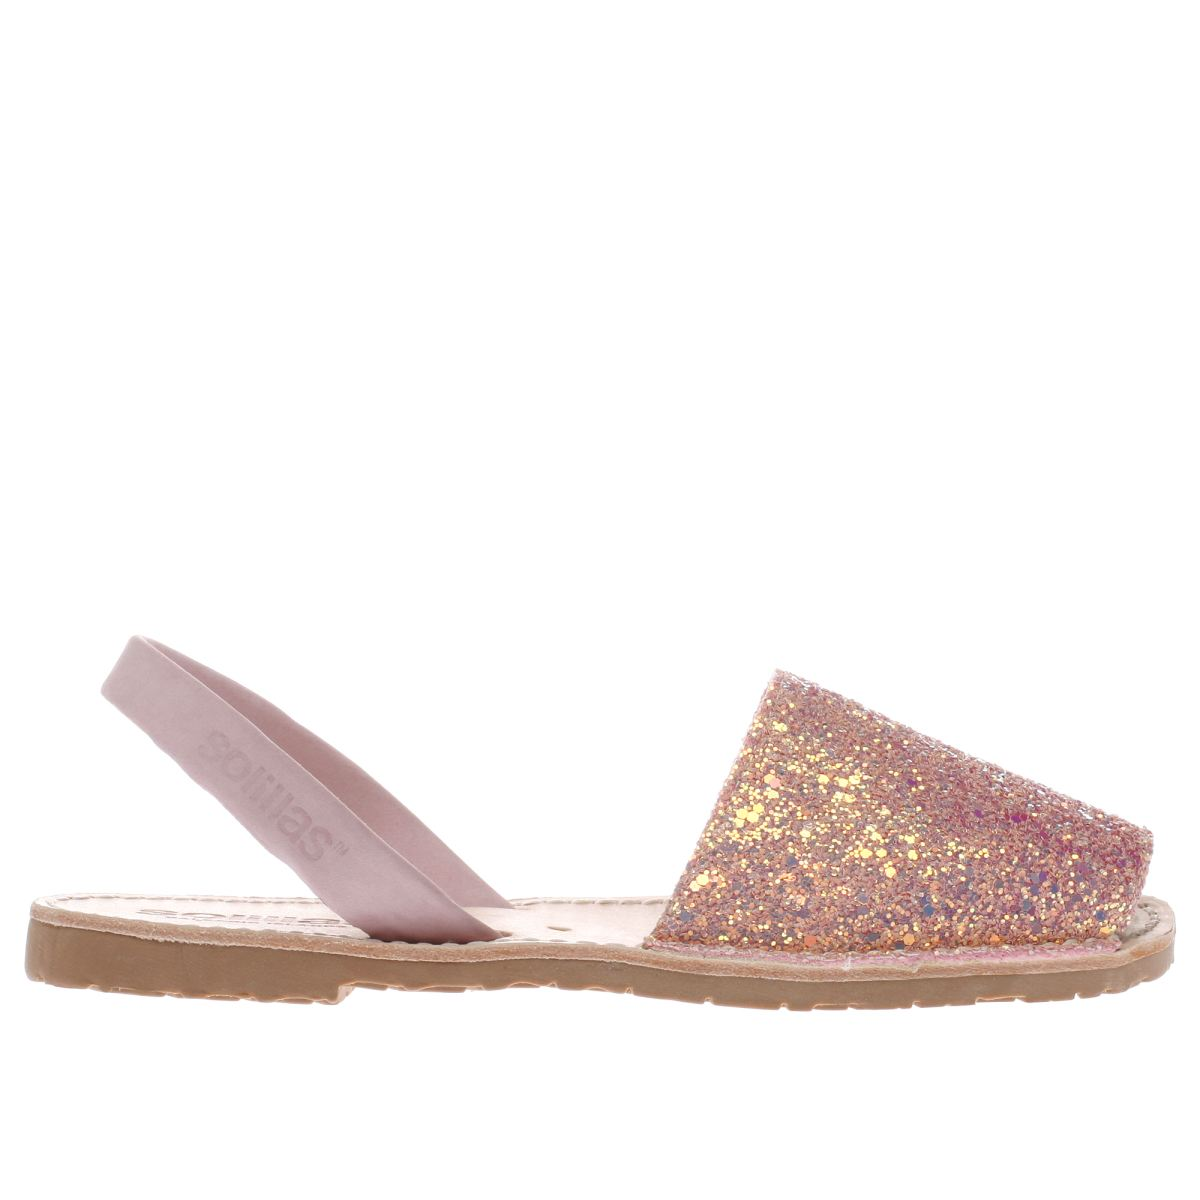 solillas pale pink original sandals